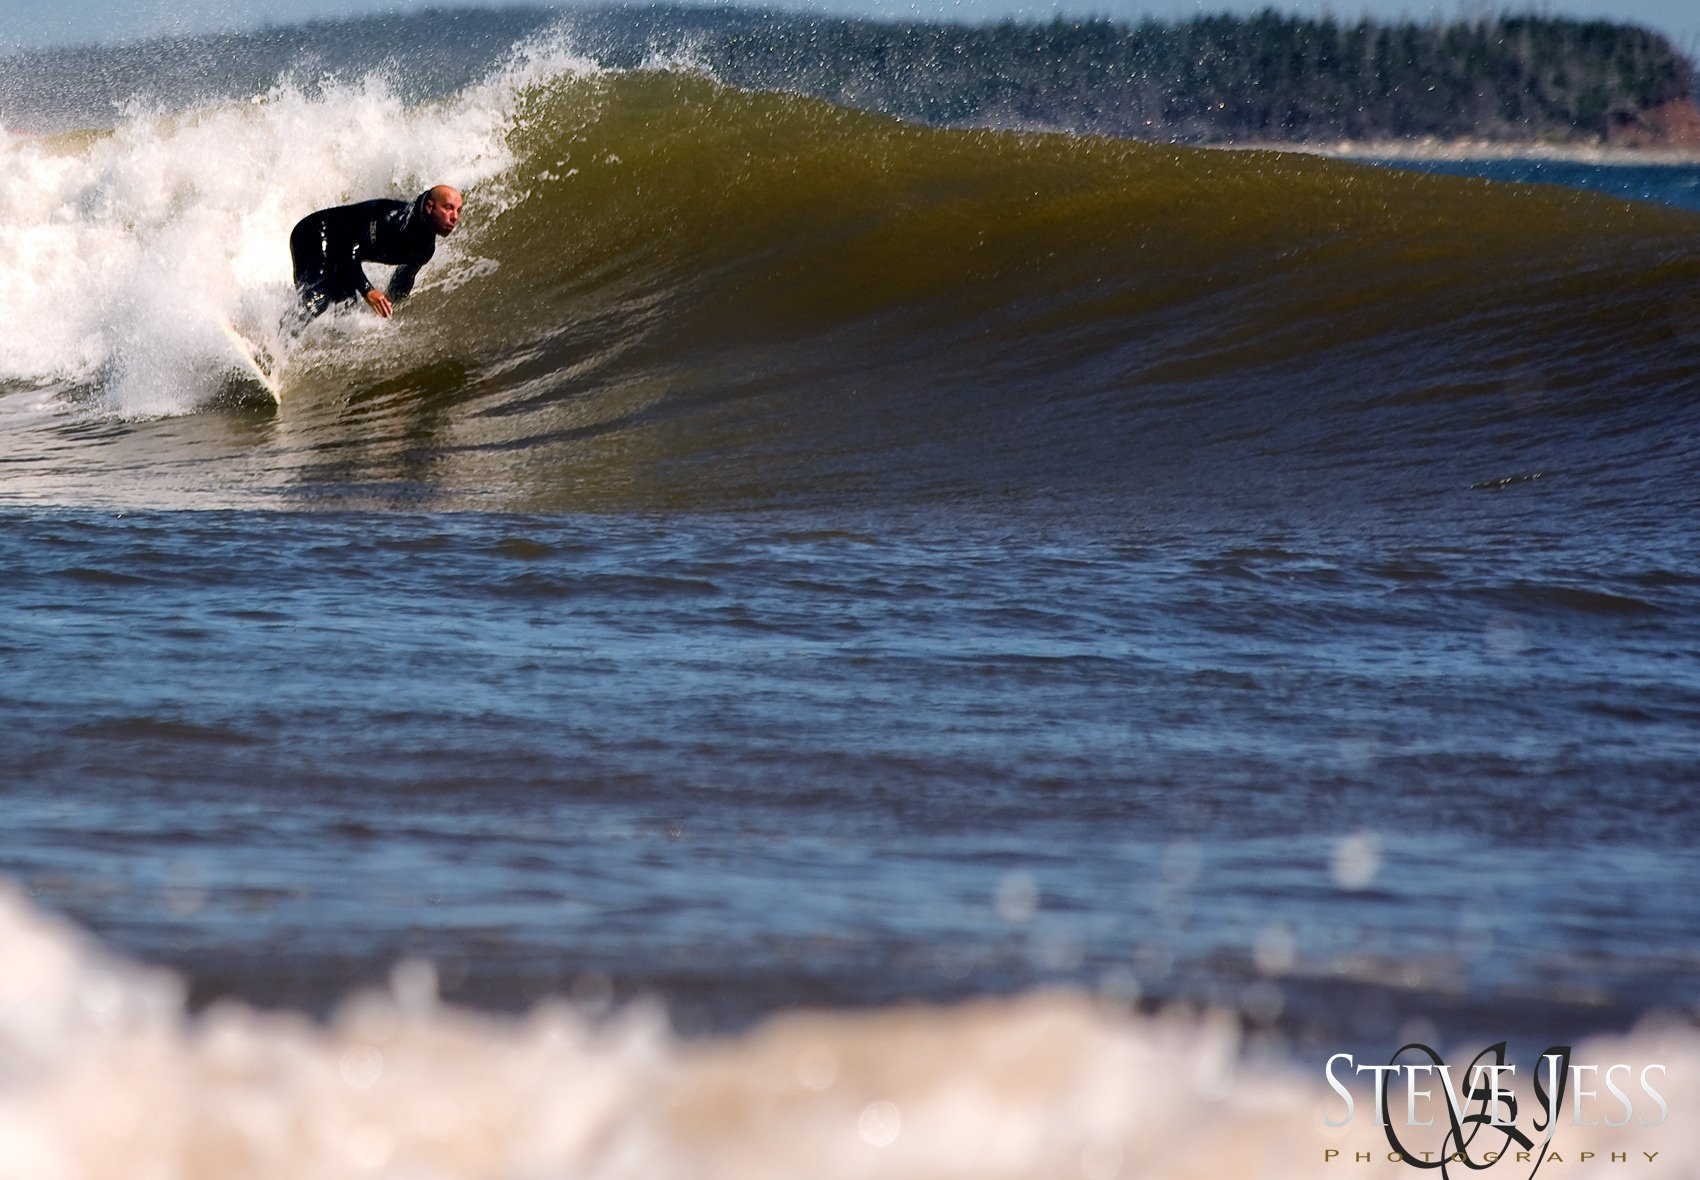 Steve Jess's photo of Lawrencetown